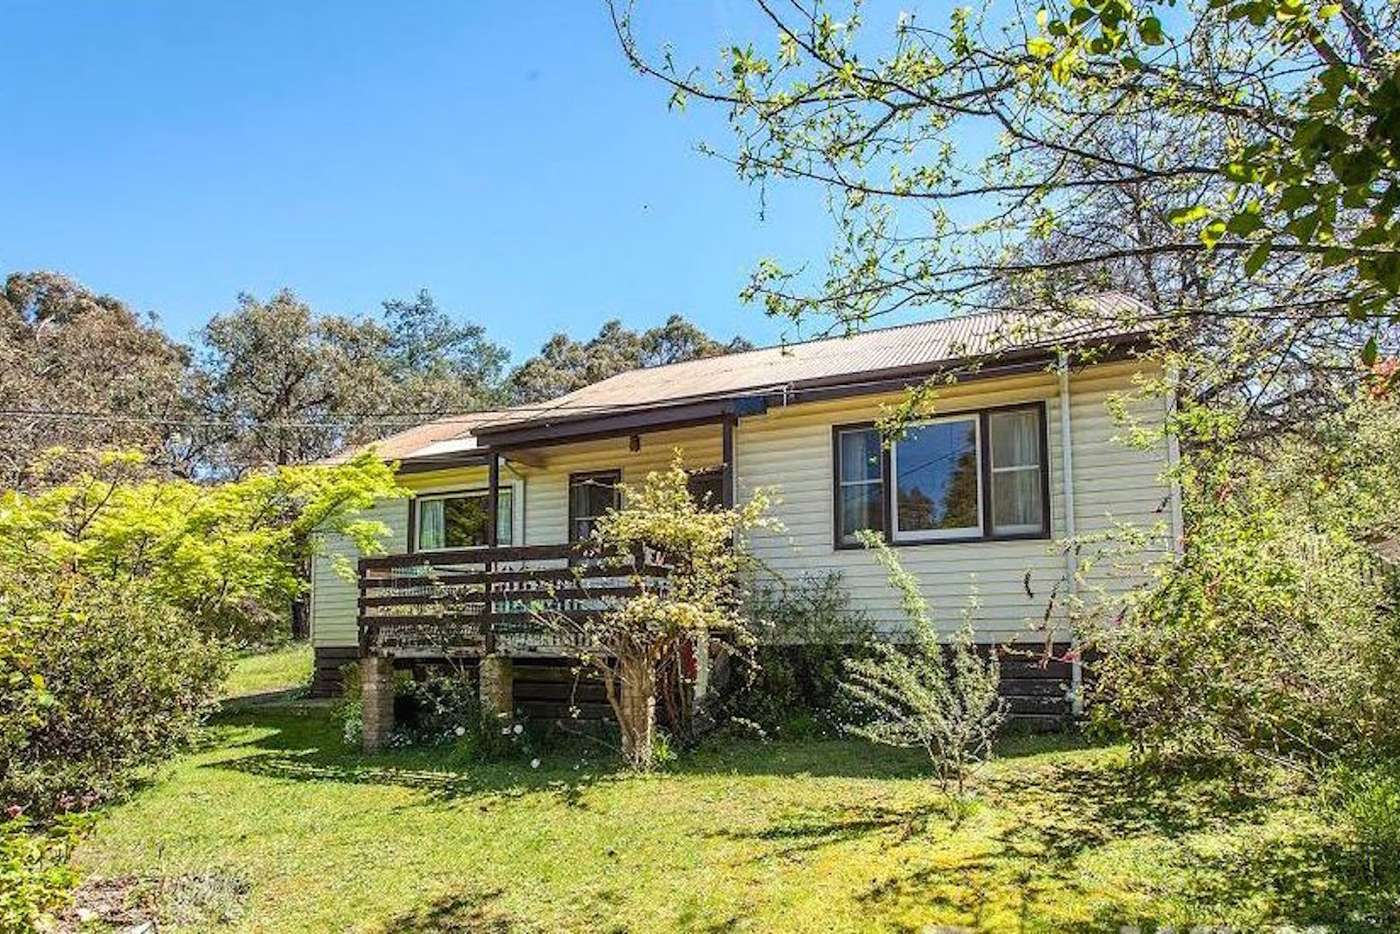 Main view of Homely house listing, 22 Mines Road, Ringwood East VIC 3135